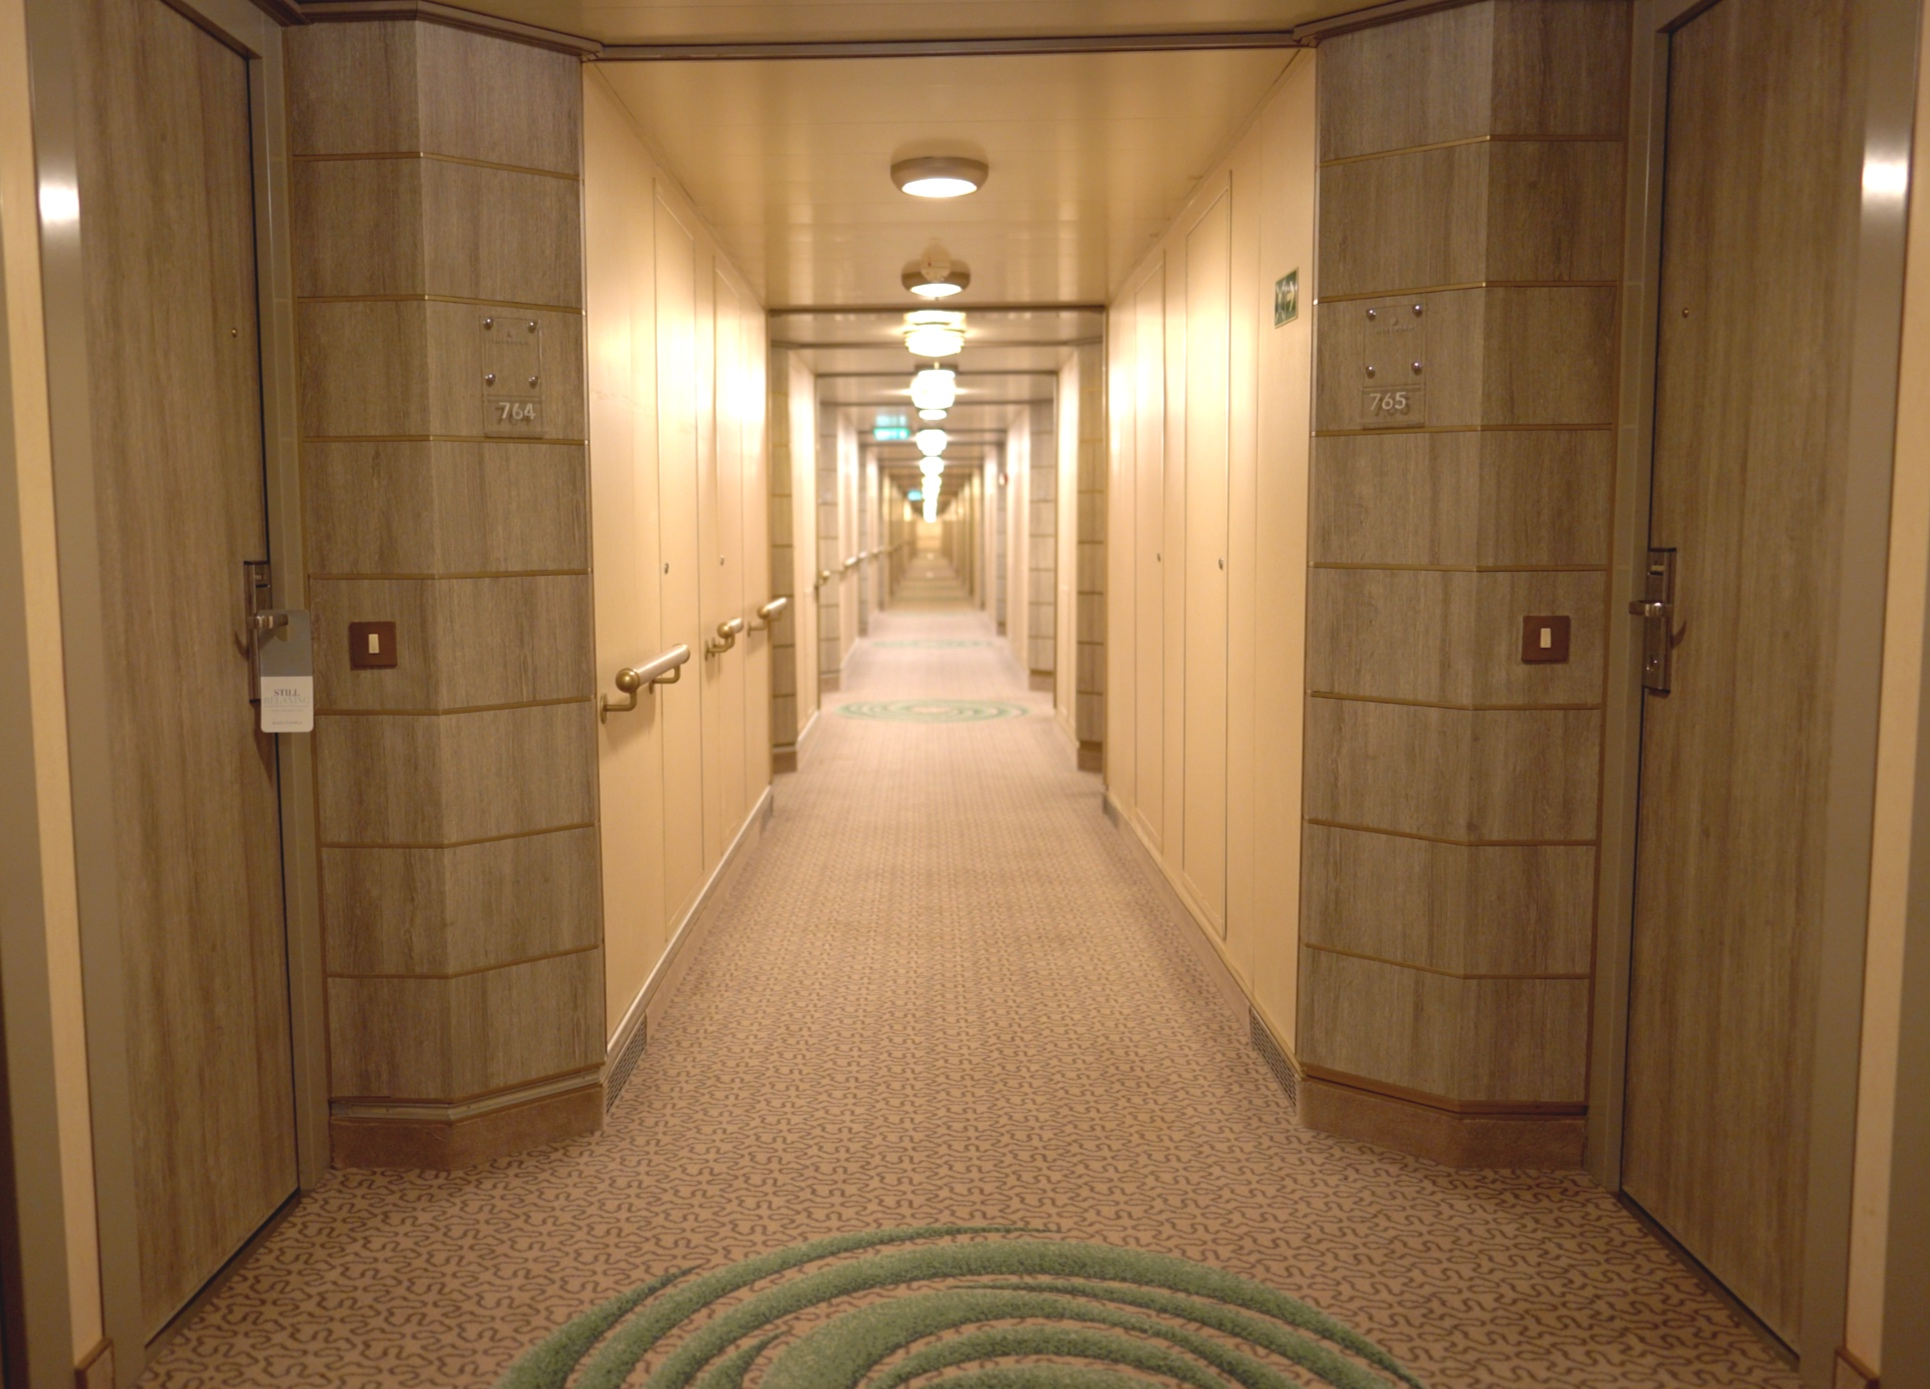 Our suite was almost at the end of this long corridor.